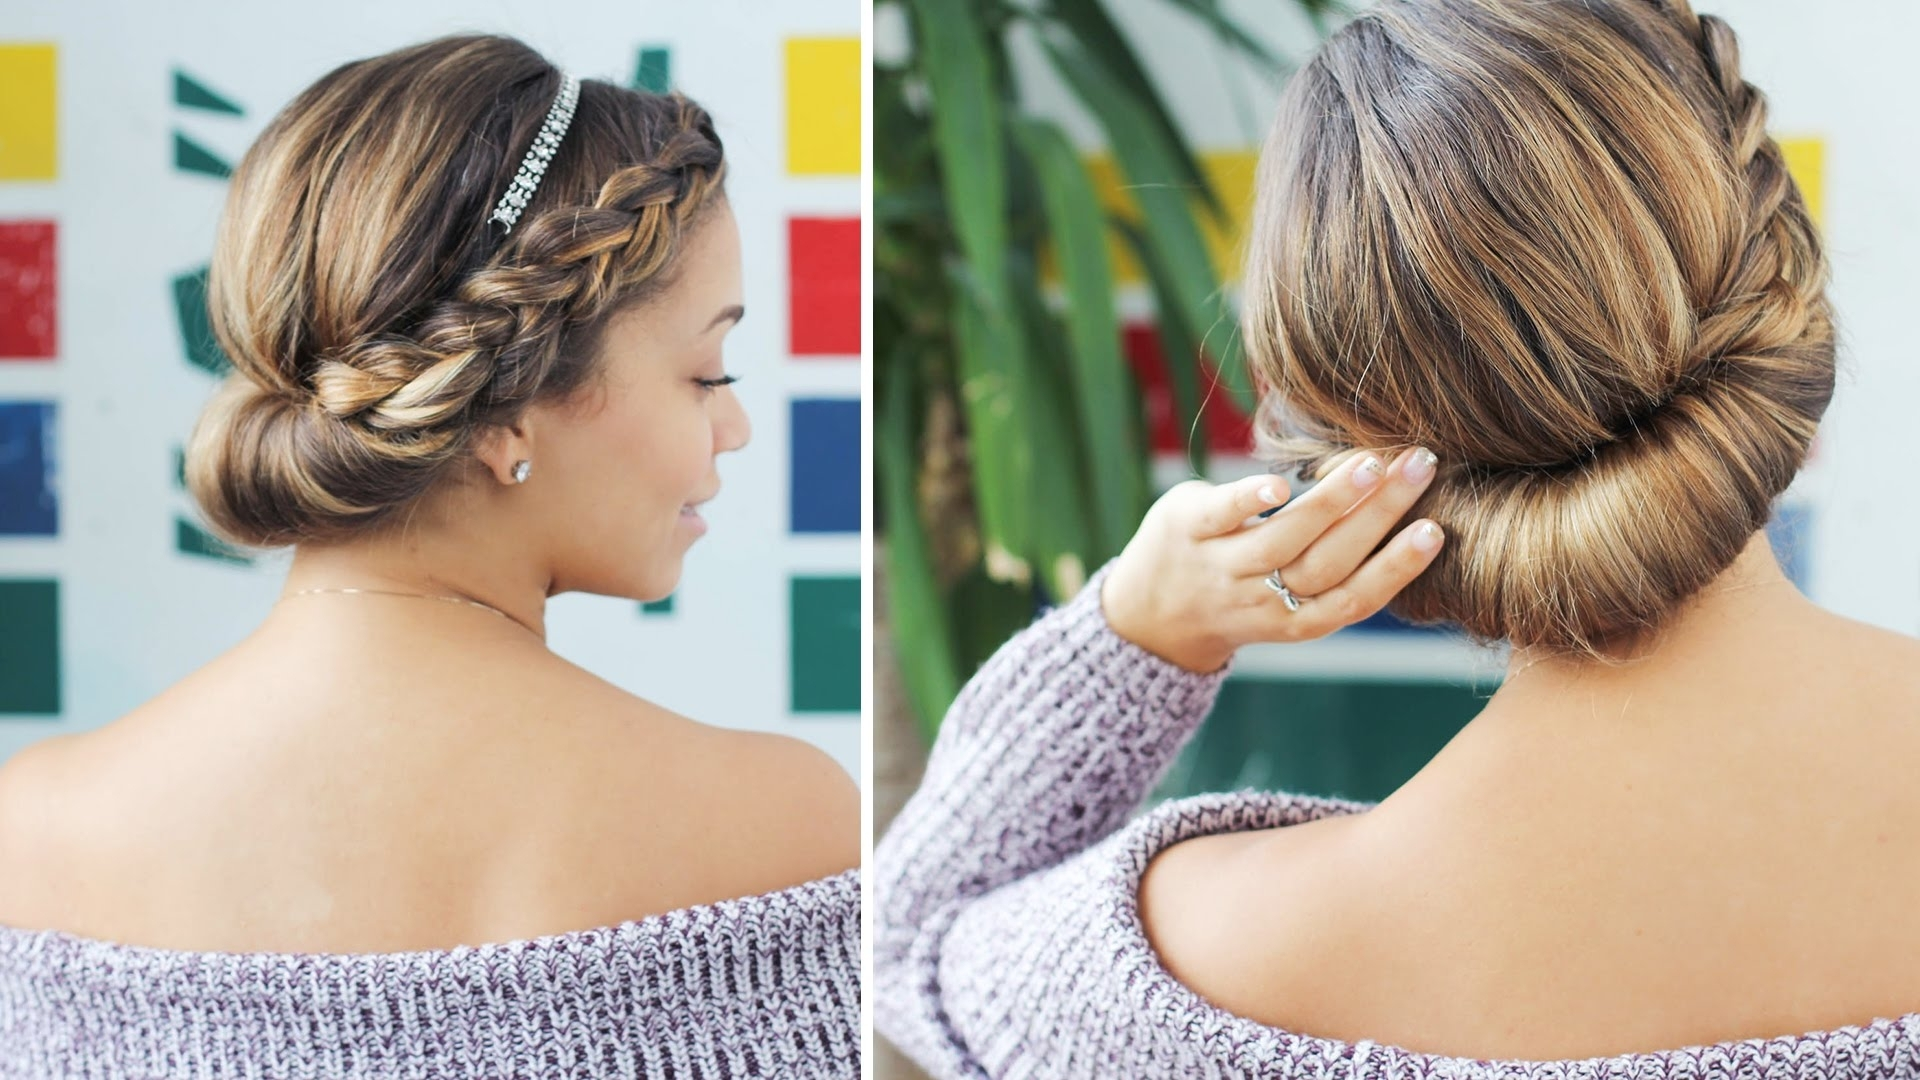 Simple Updo Hairstyles For Short Hair Easy Updo For Short Hair Pertaining To Luxy Updo (View 10 of 15)